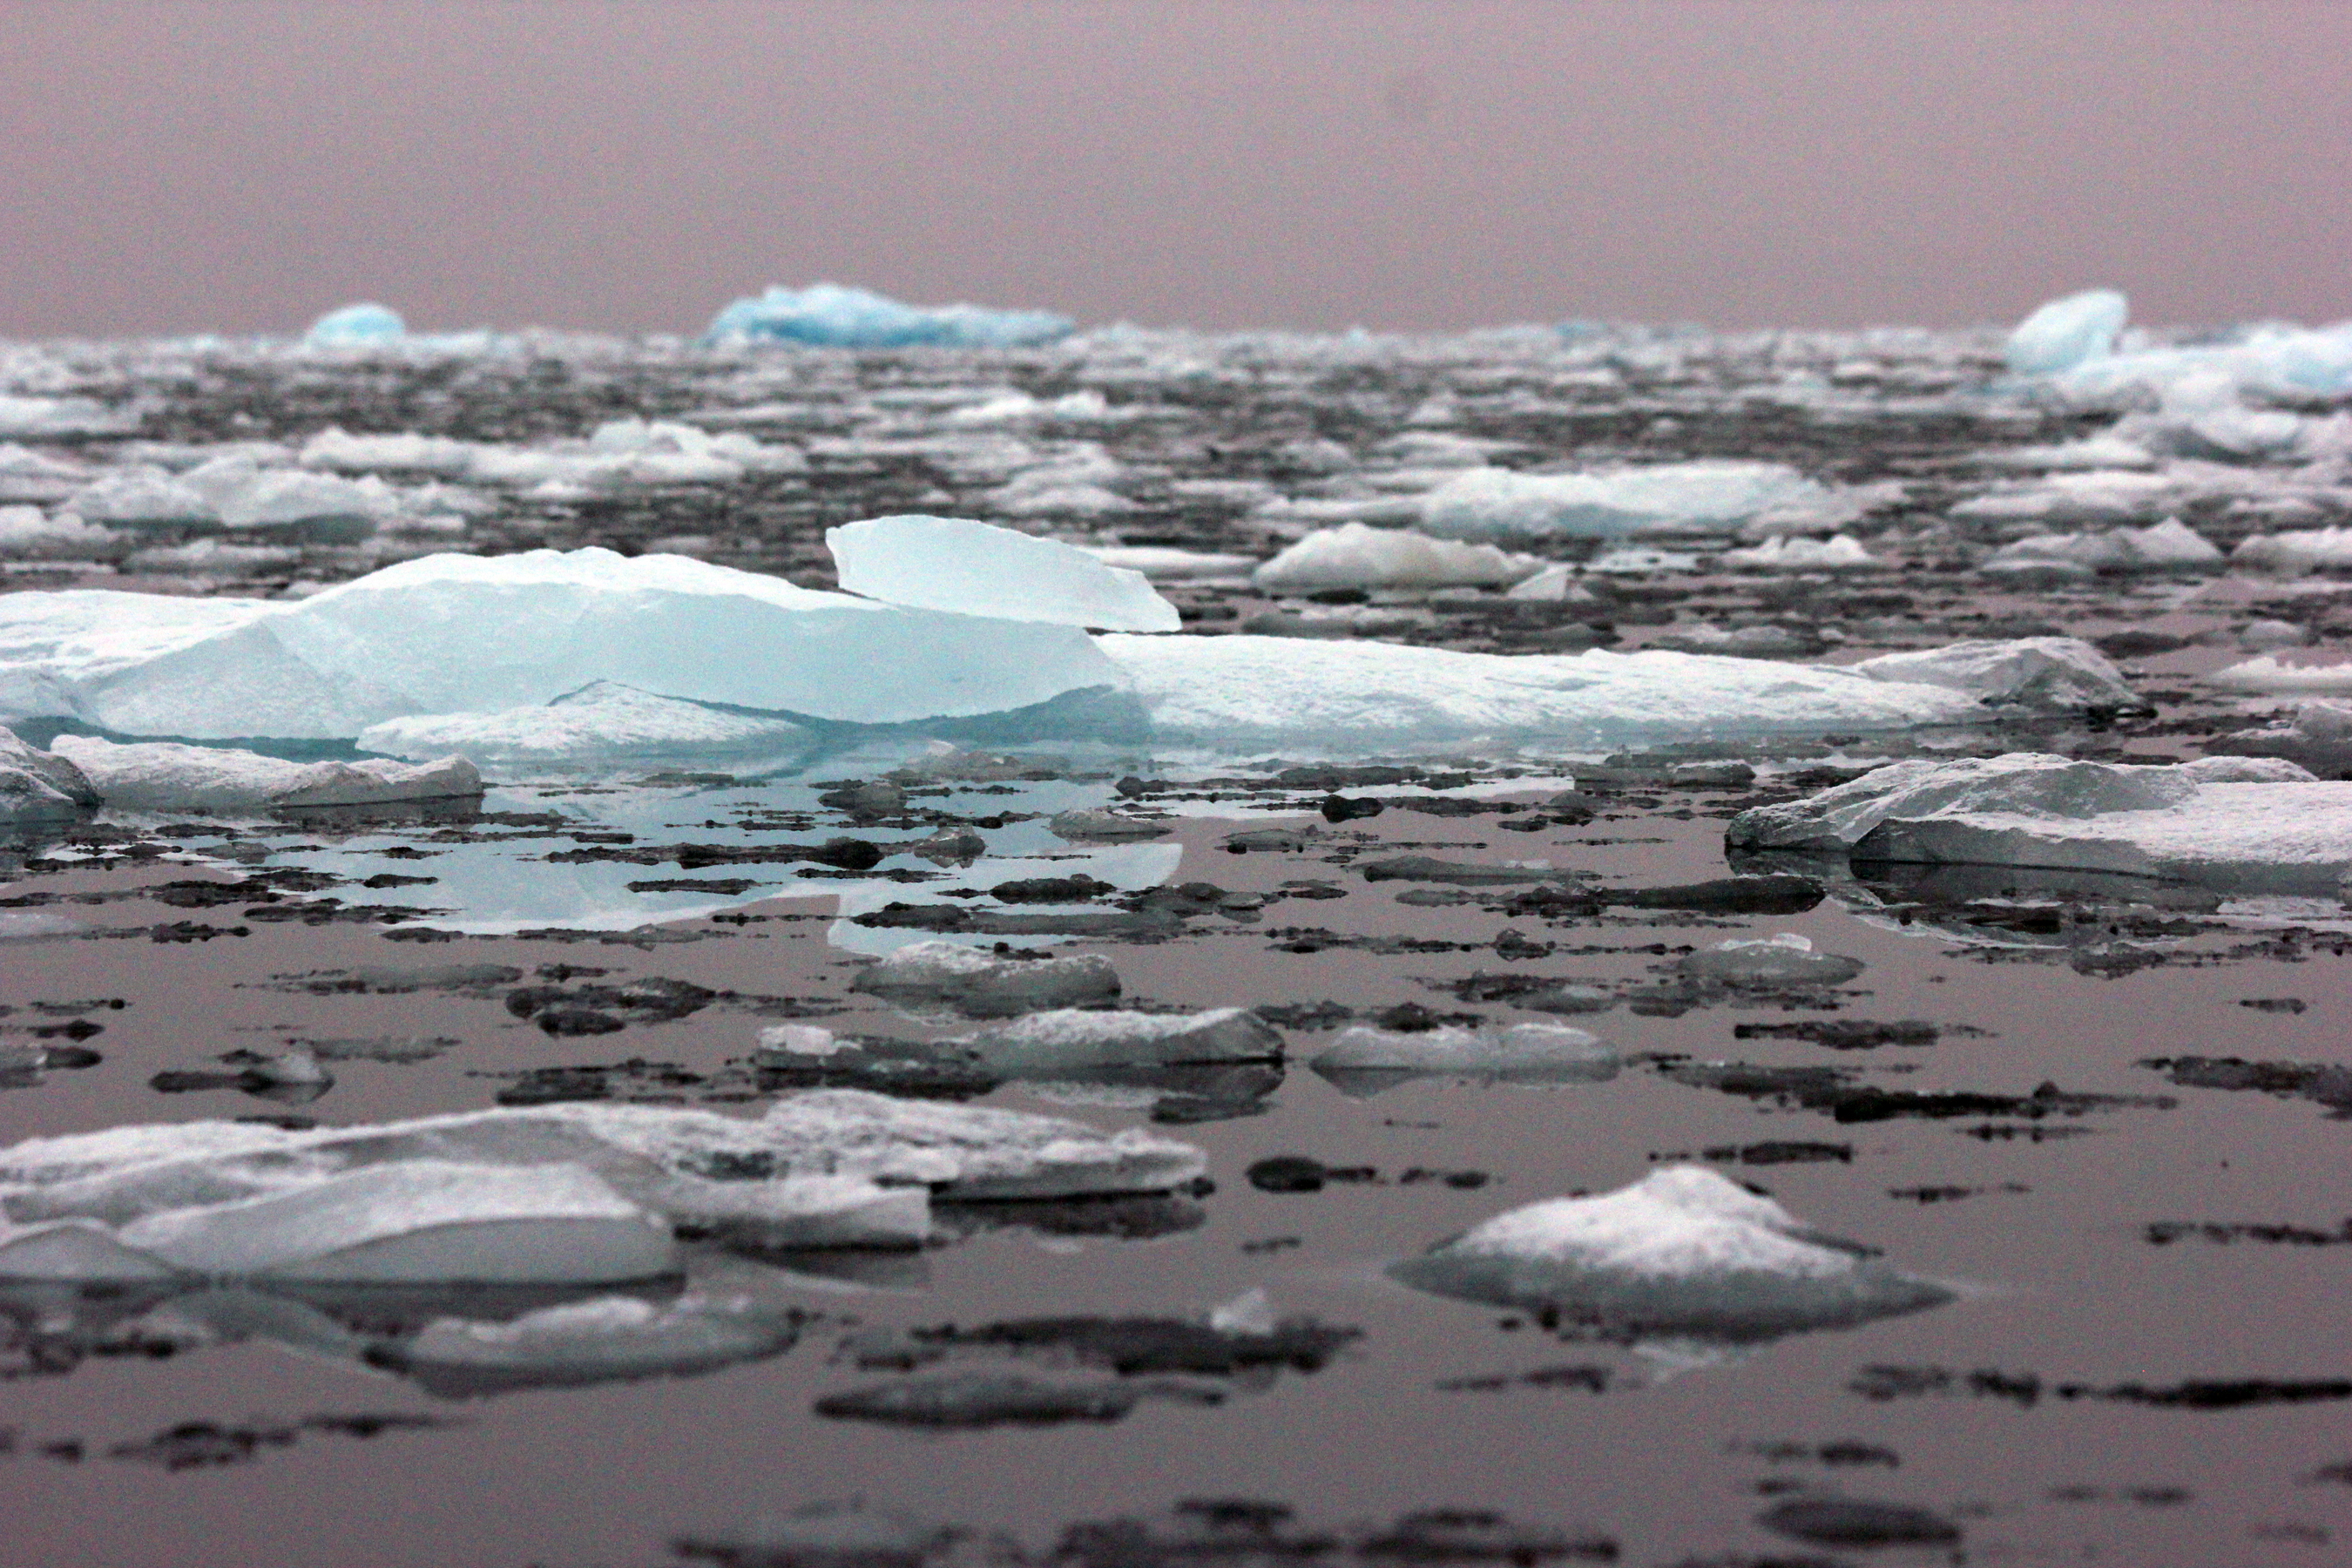 Ice_on_Arctic_Ocean_credit_Danielle_Eubank_Svalbard_Oct2014